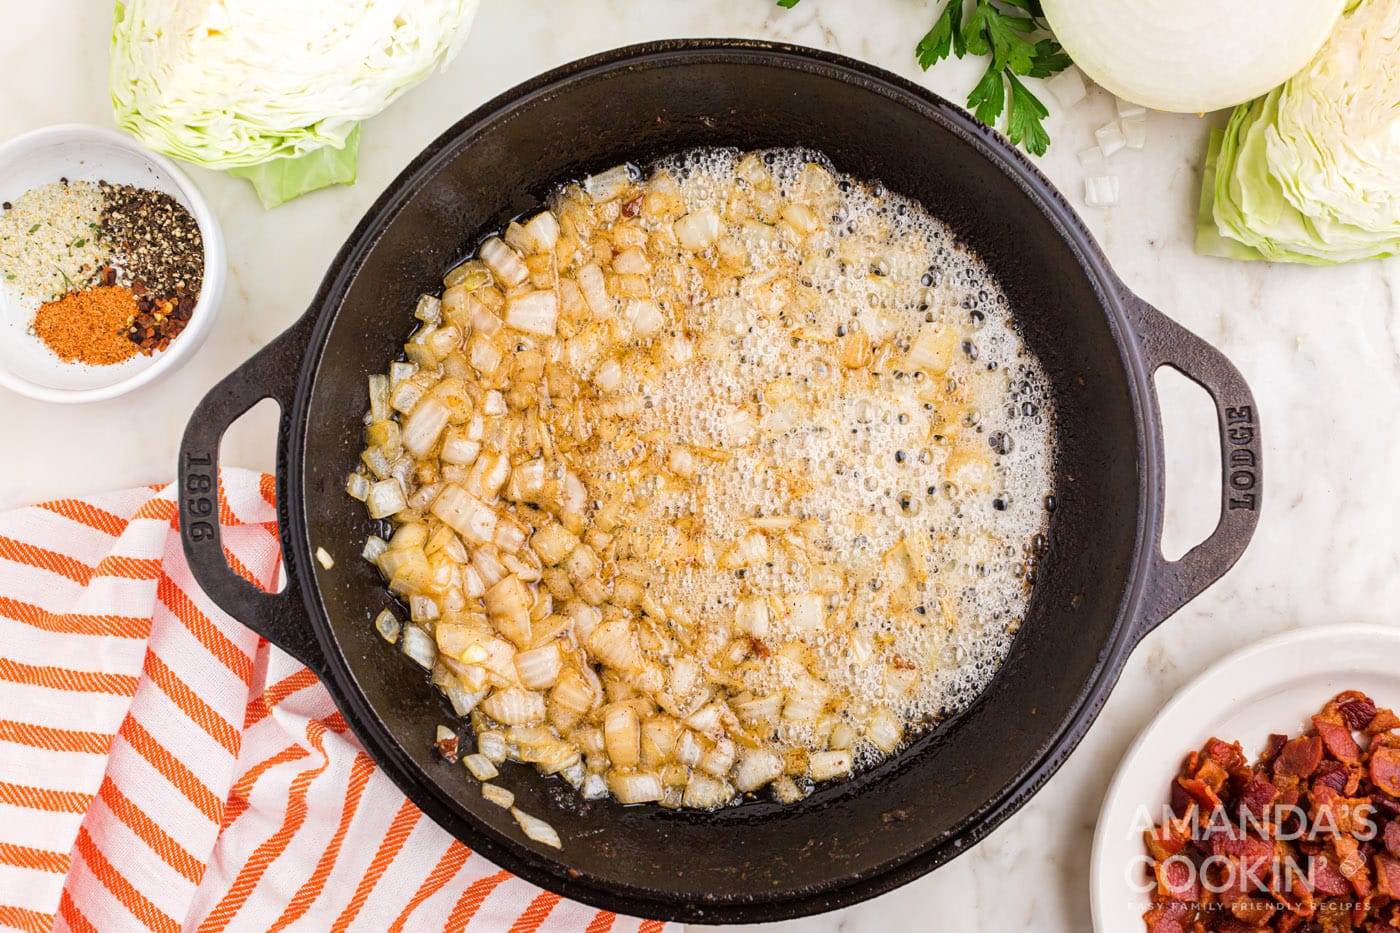 diced onion in a skillet